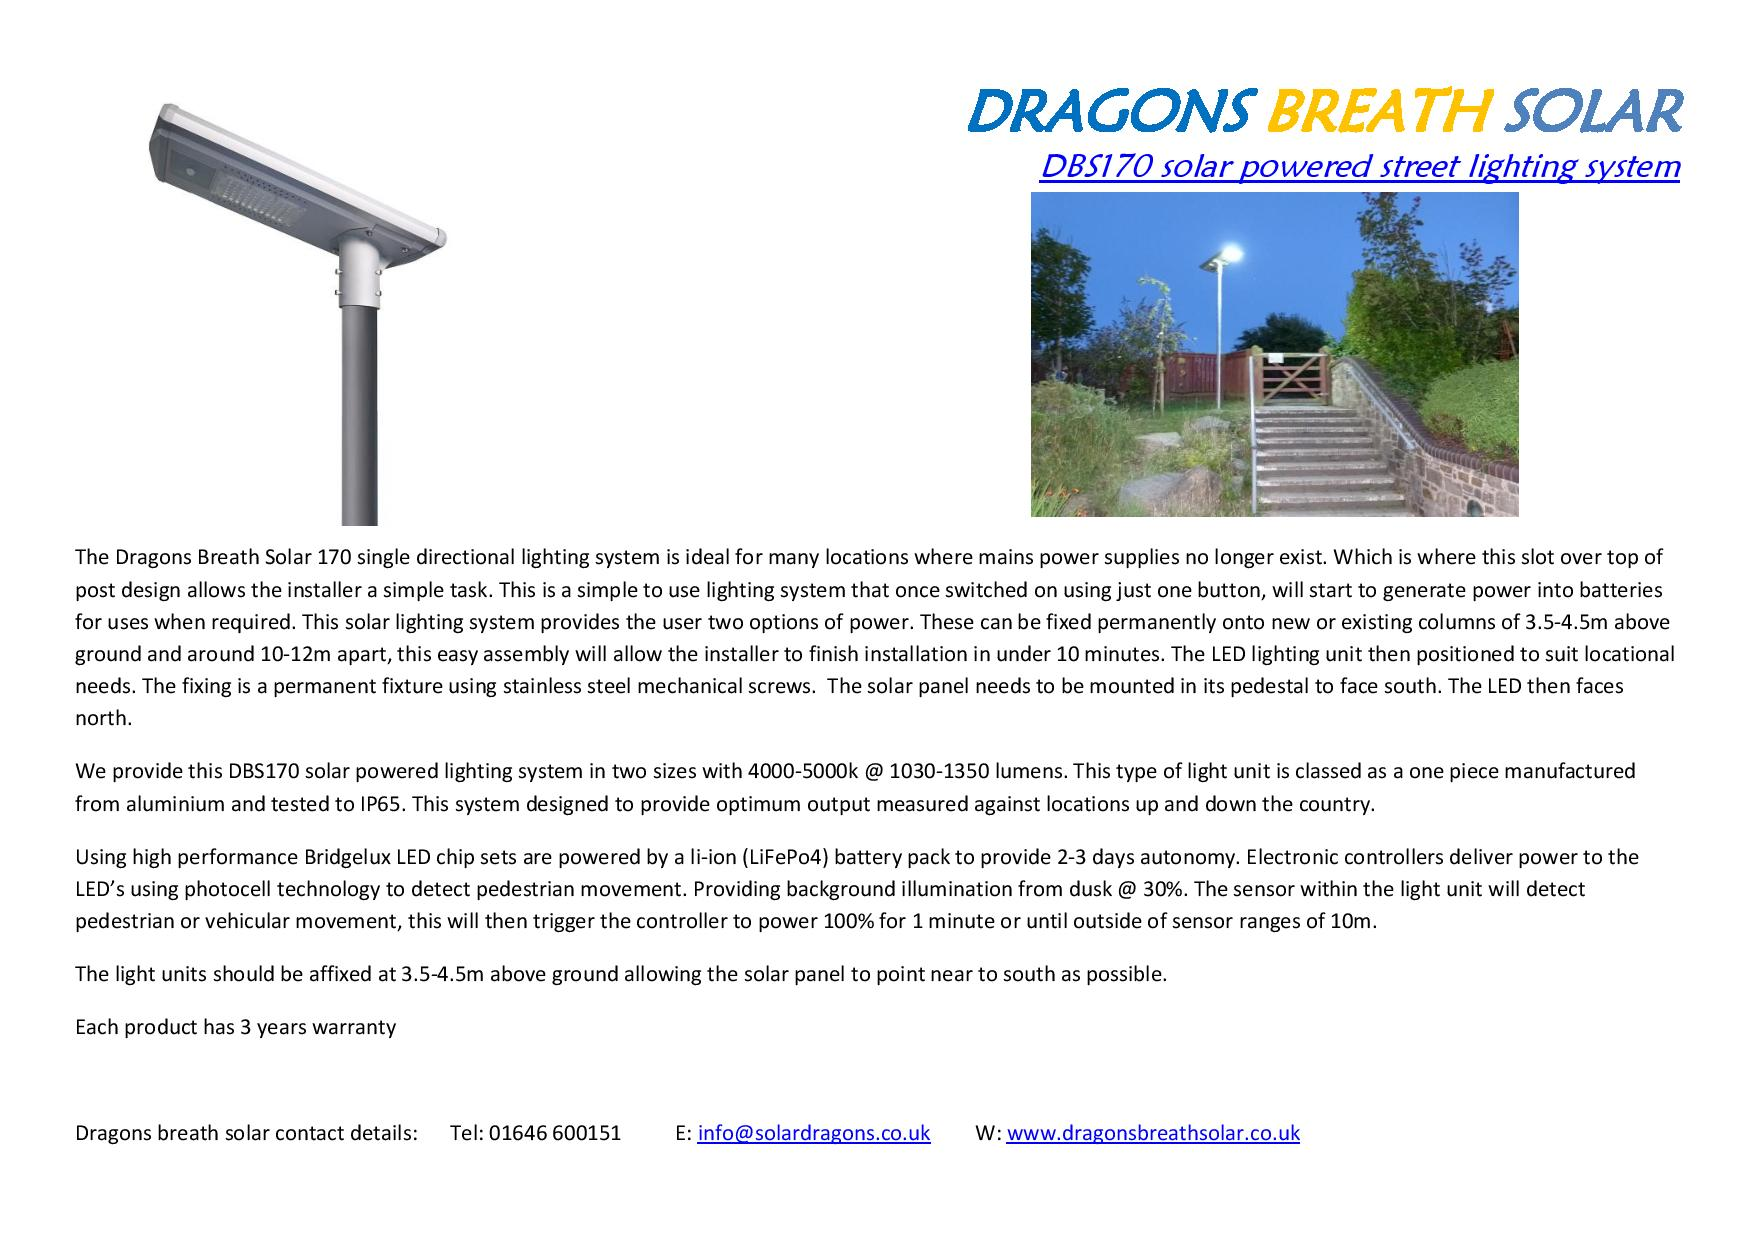 Solt over top of existing column solar lighting system